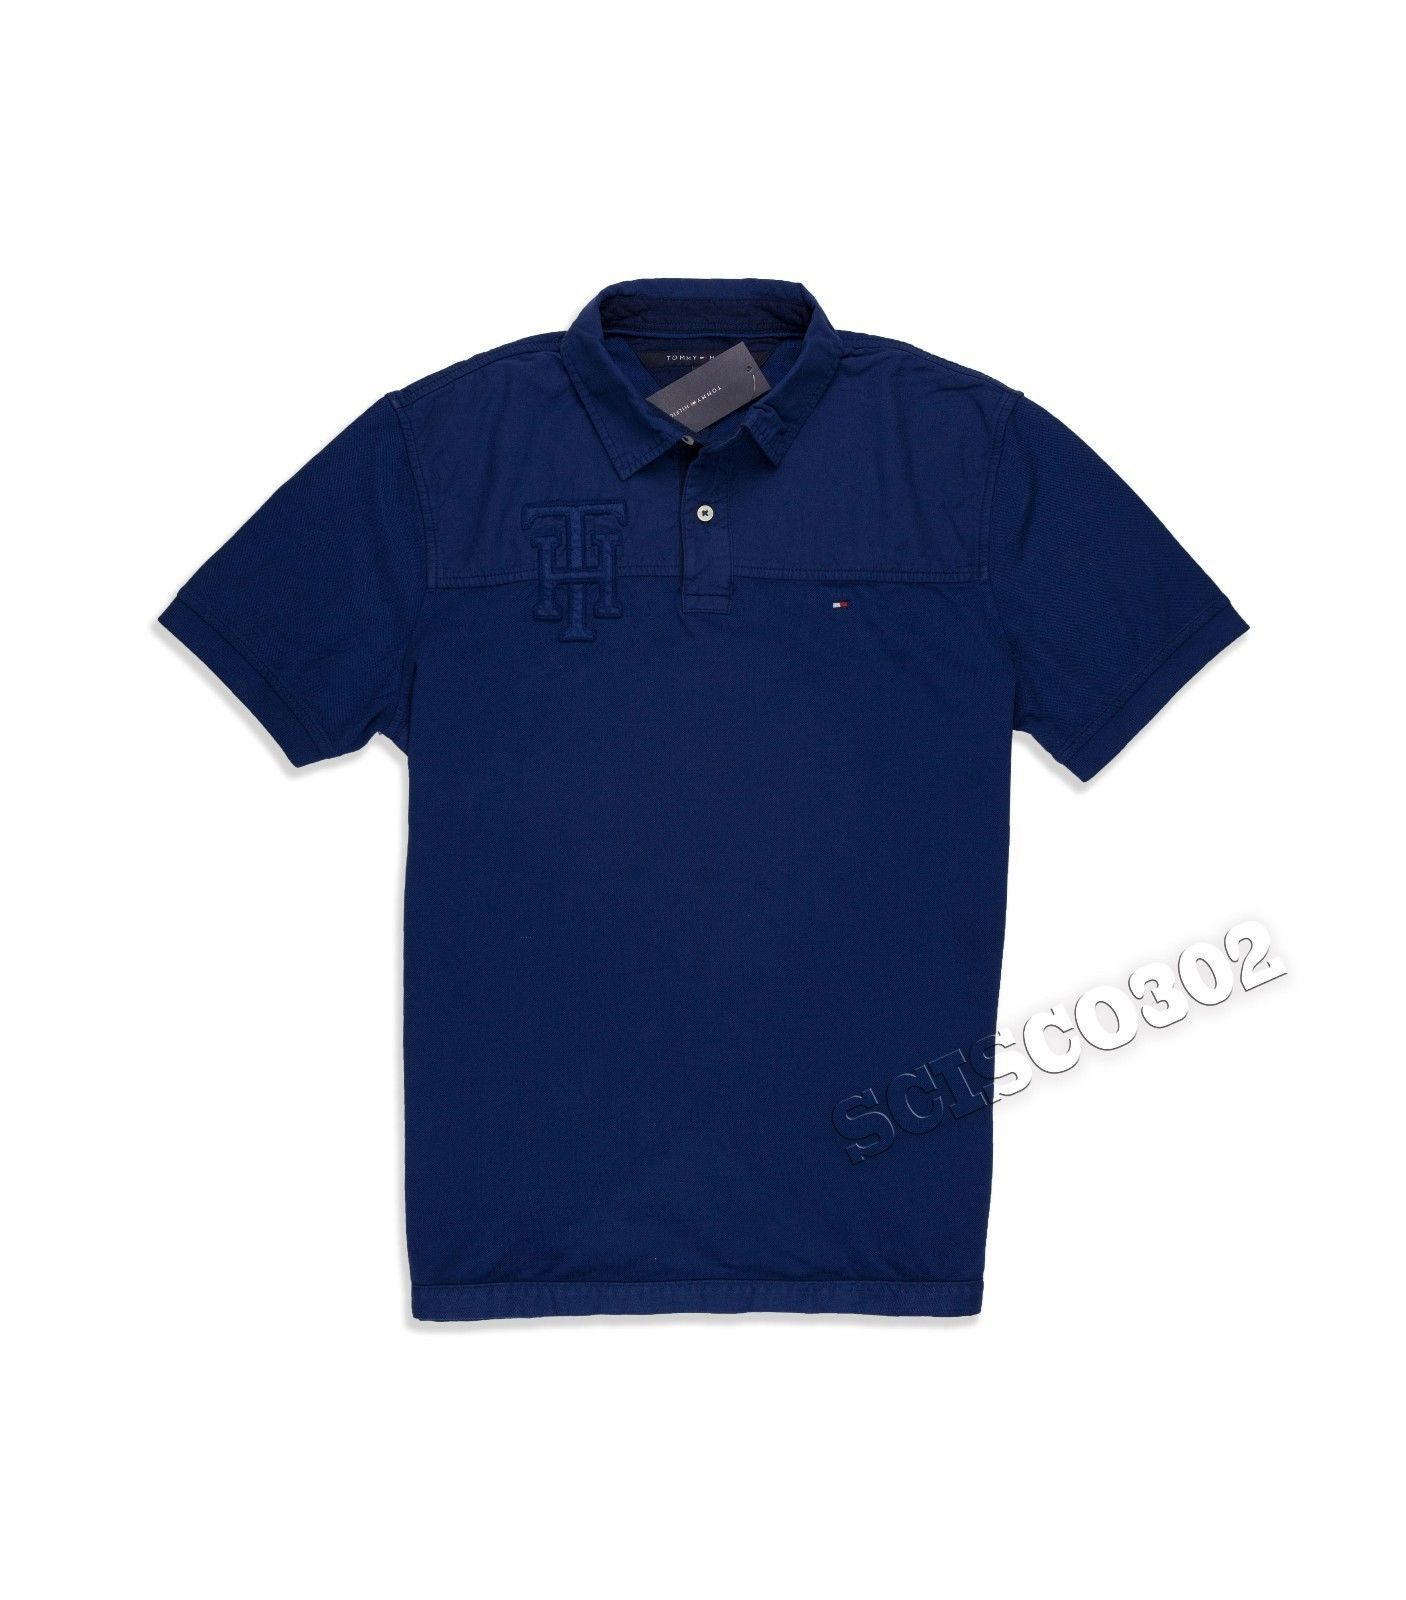 7380ff81c8308 Tommy Hilfiger Polo Shirt Custom Fit Dip Dyed Navy Blue